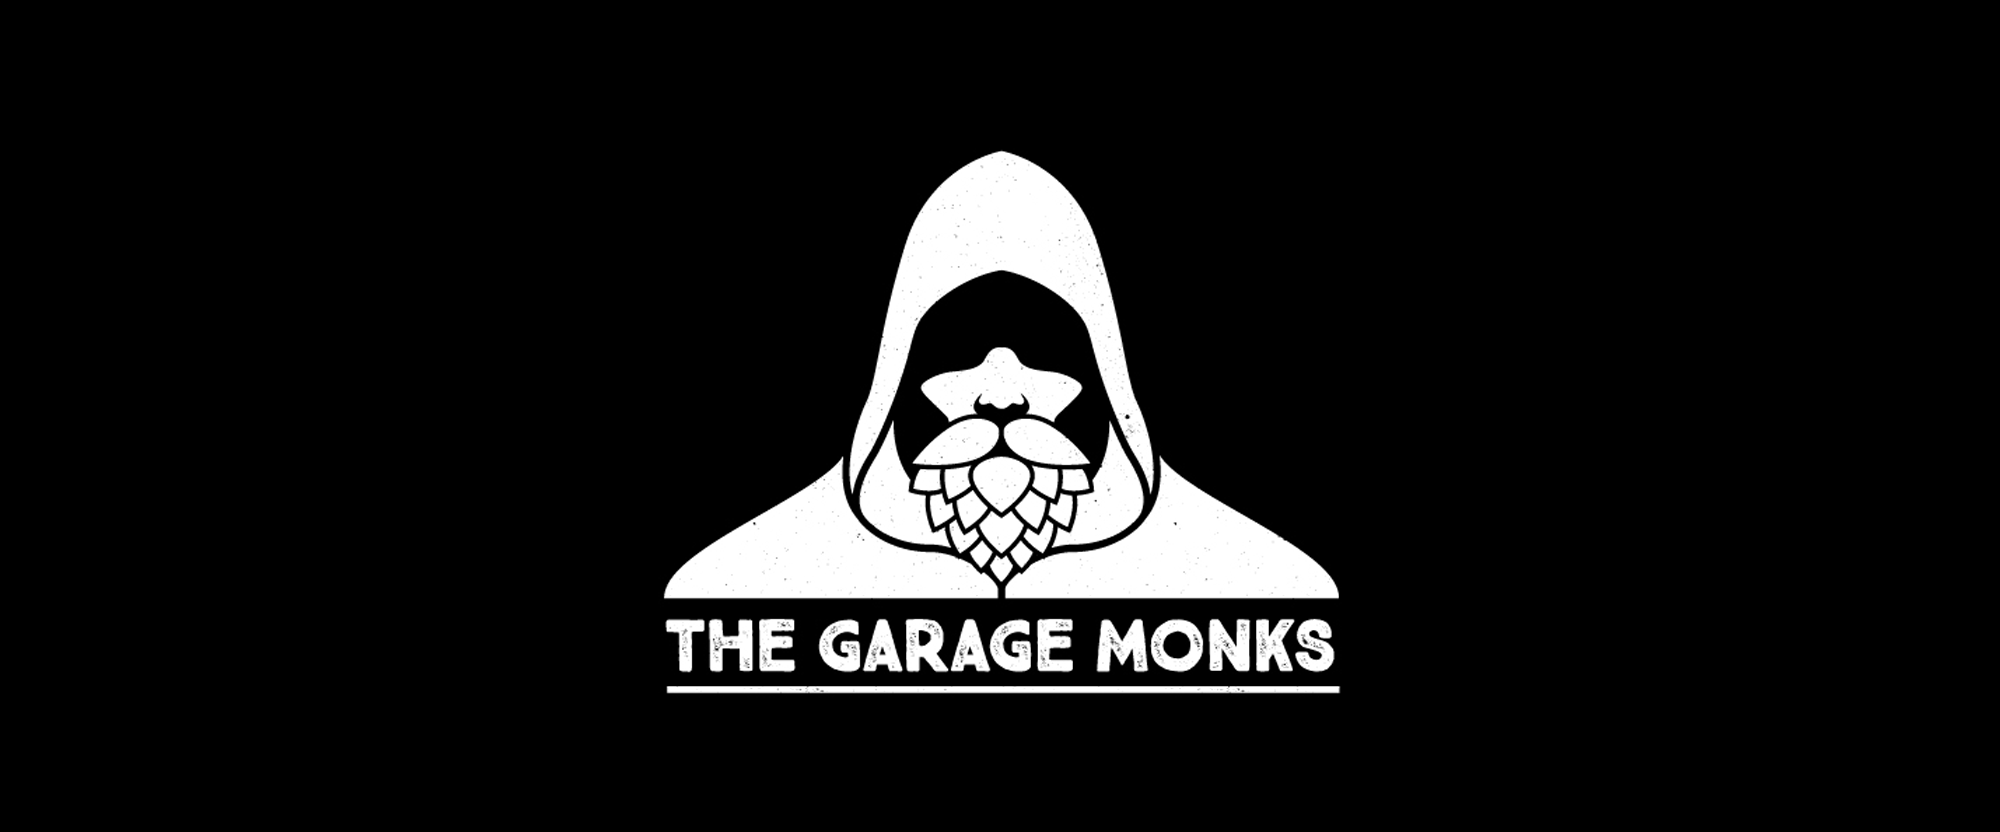 New Logo and Packaging for The Garage Monks by Jakub Cichecki